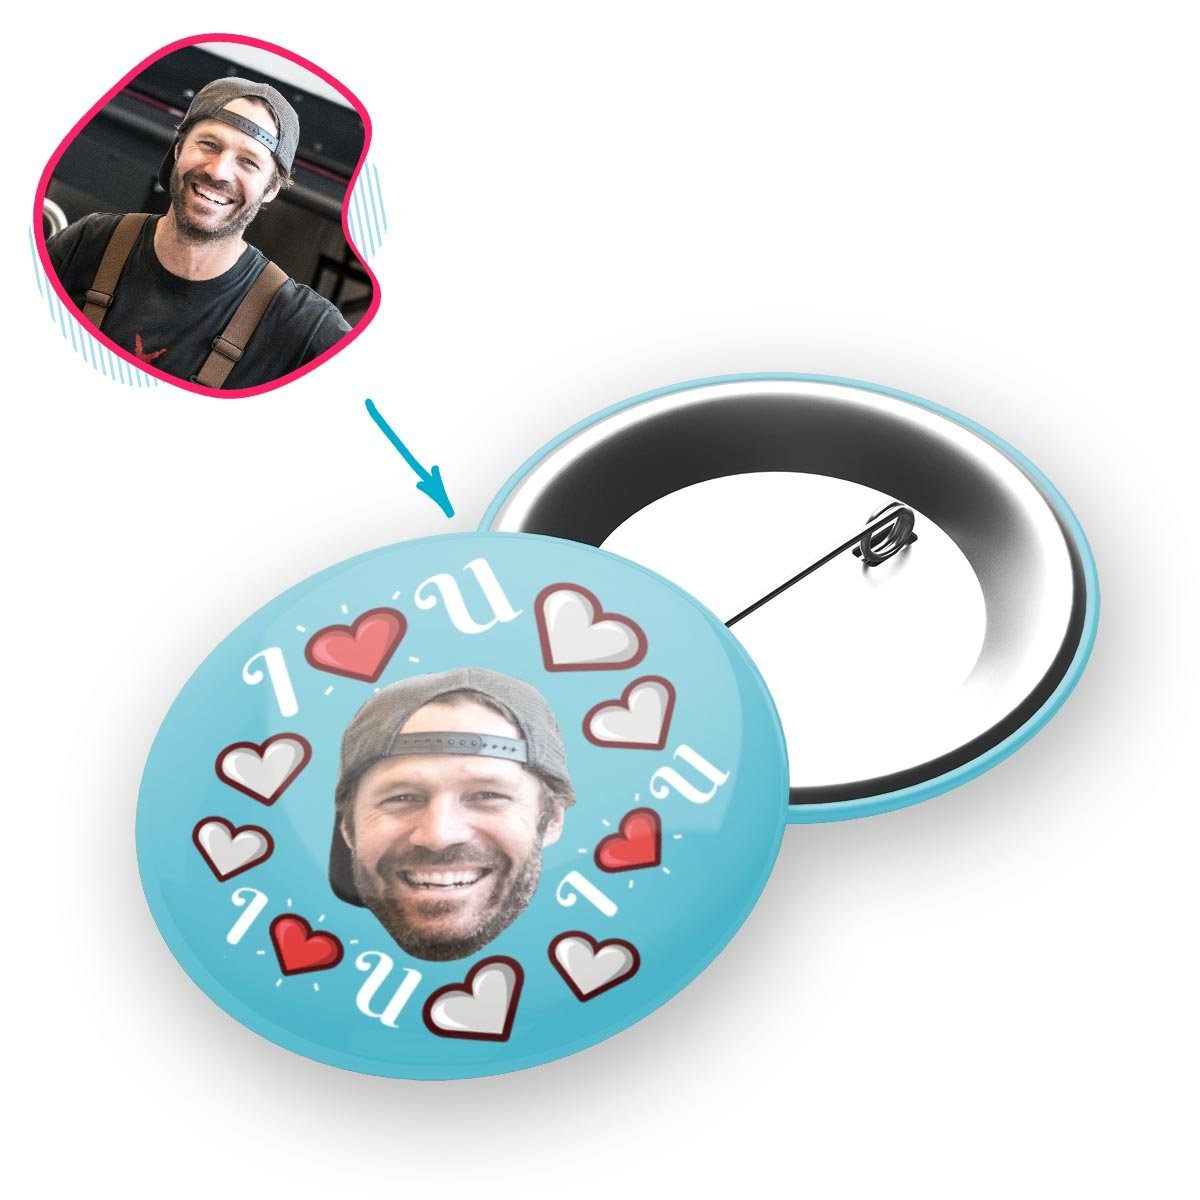 blue I <3 You pin personalized with photo of face printed on it